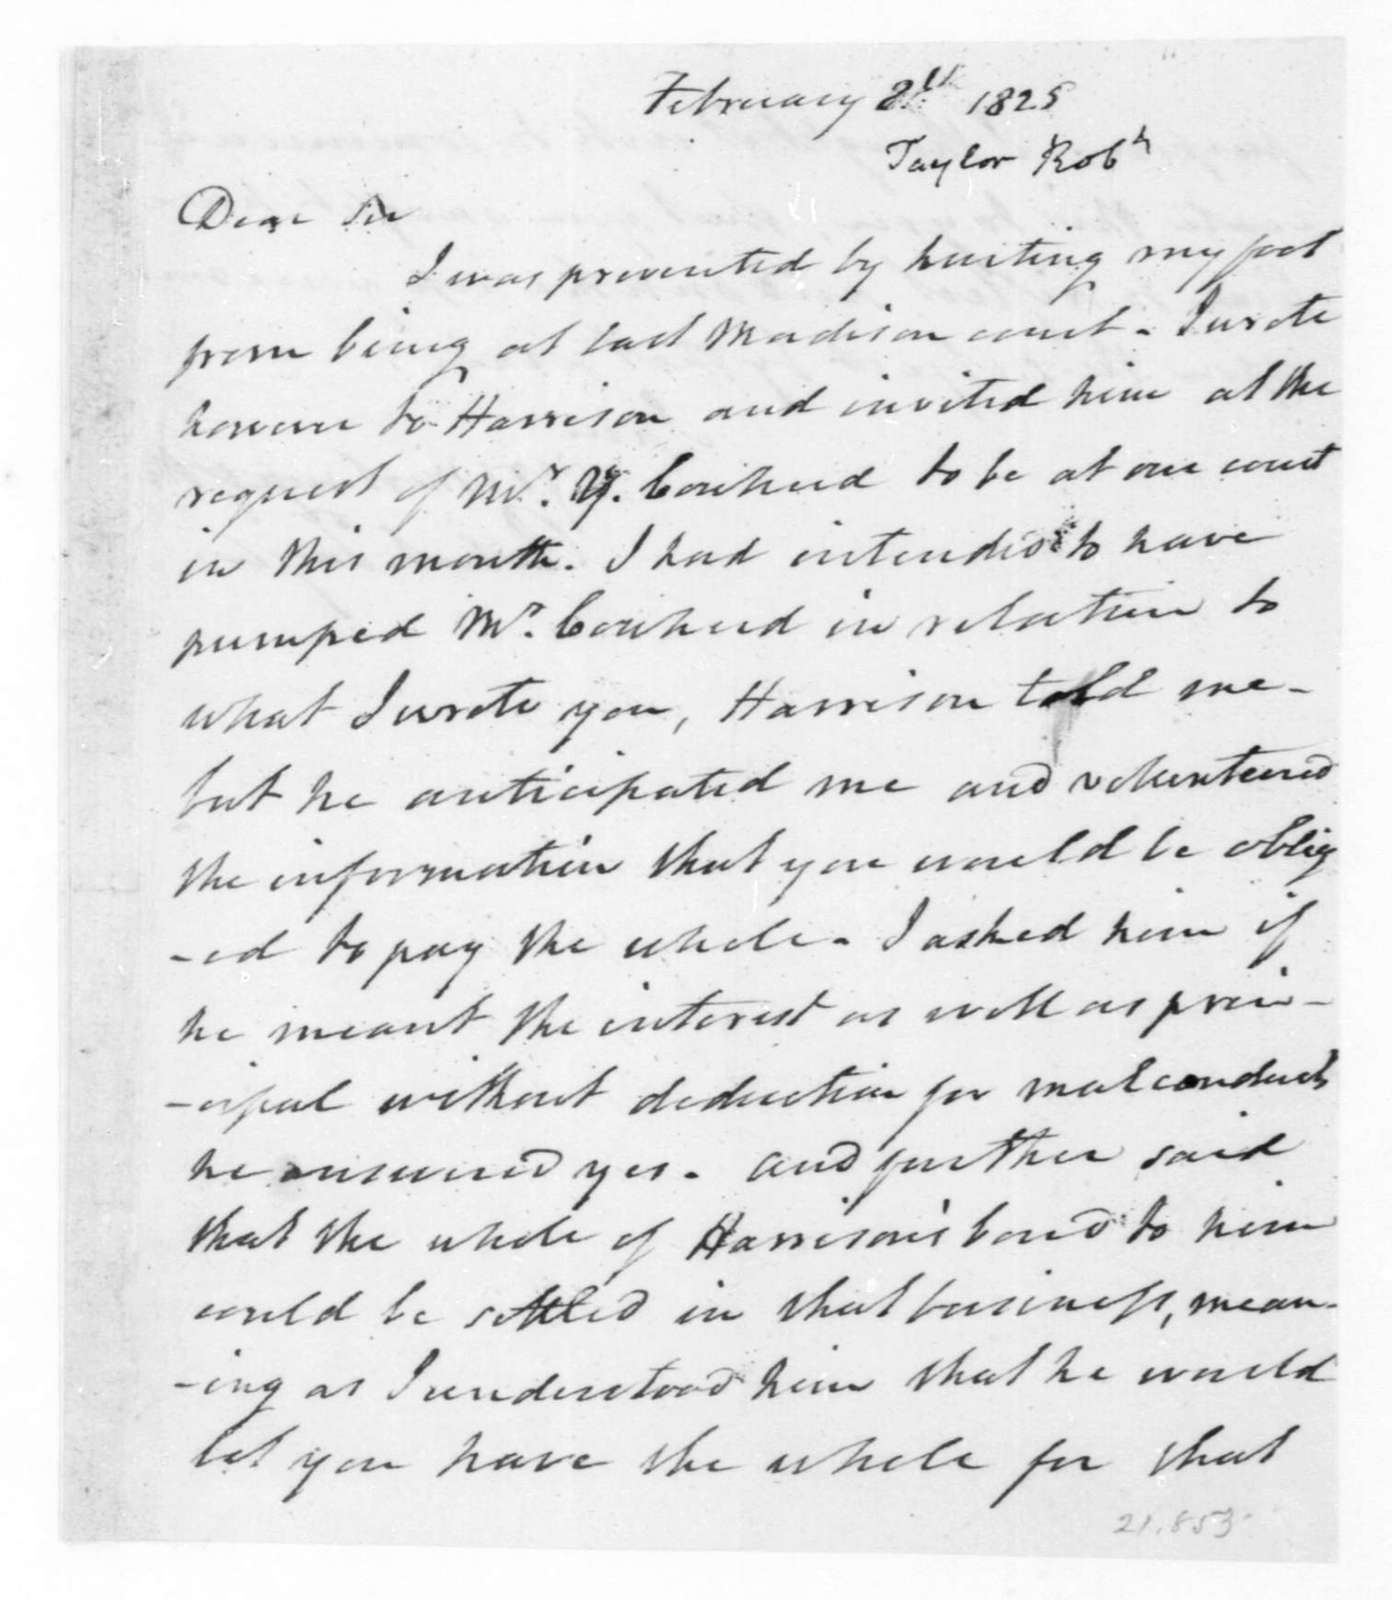 Robert Taylor to James Madison, February 8, 1825.